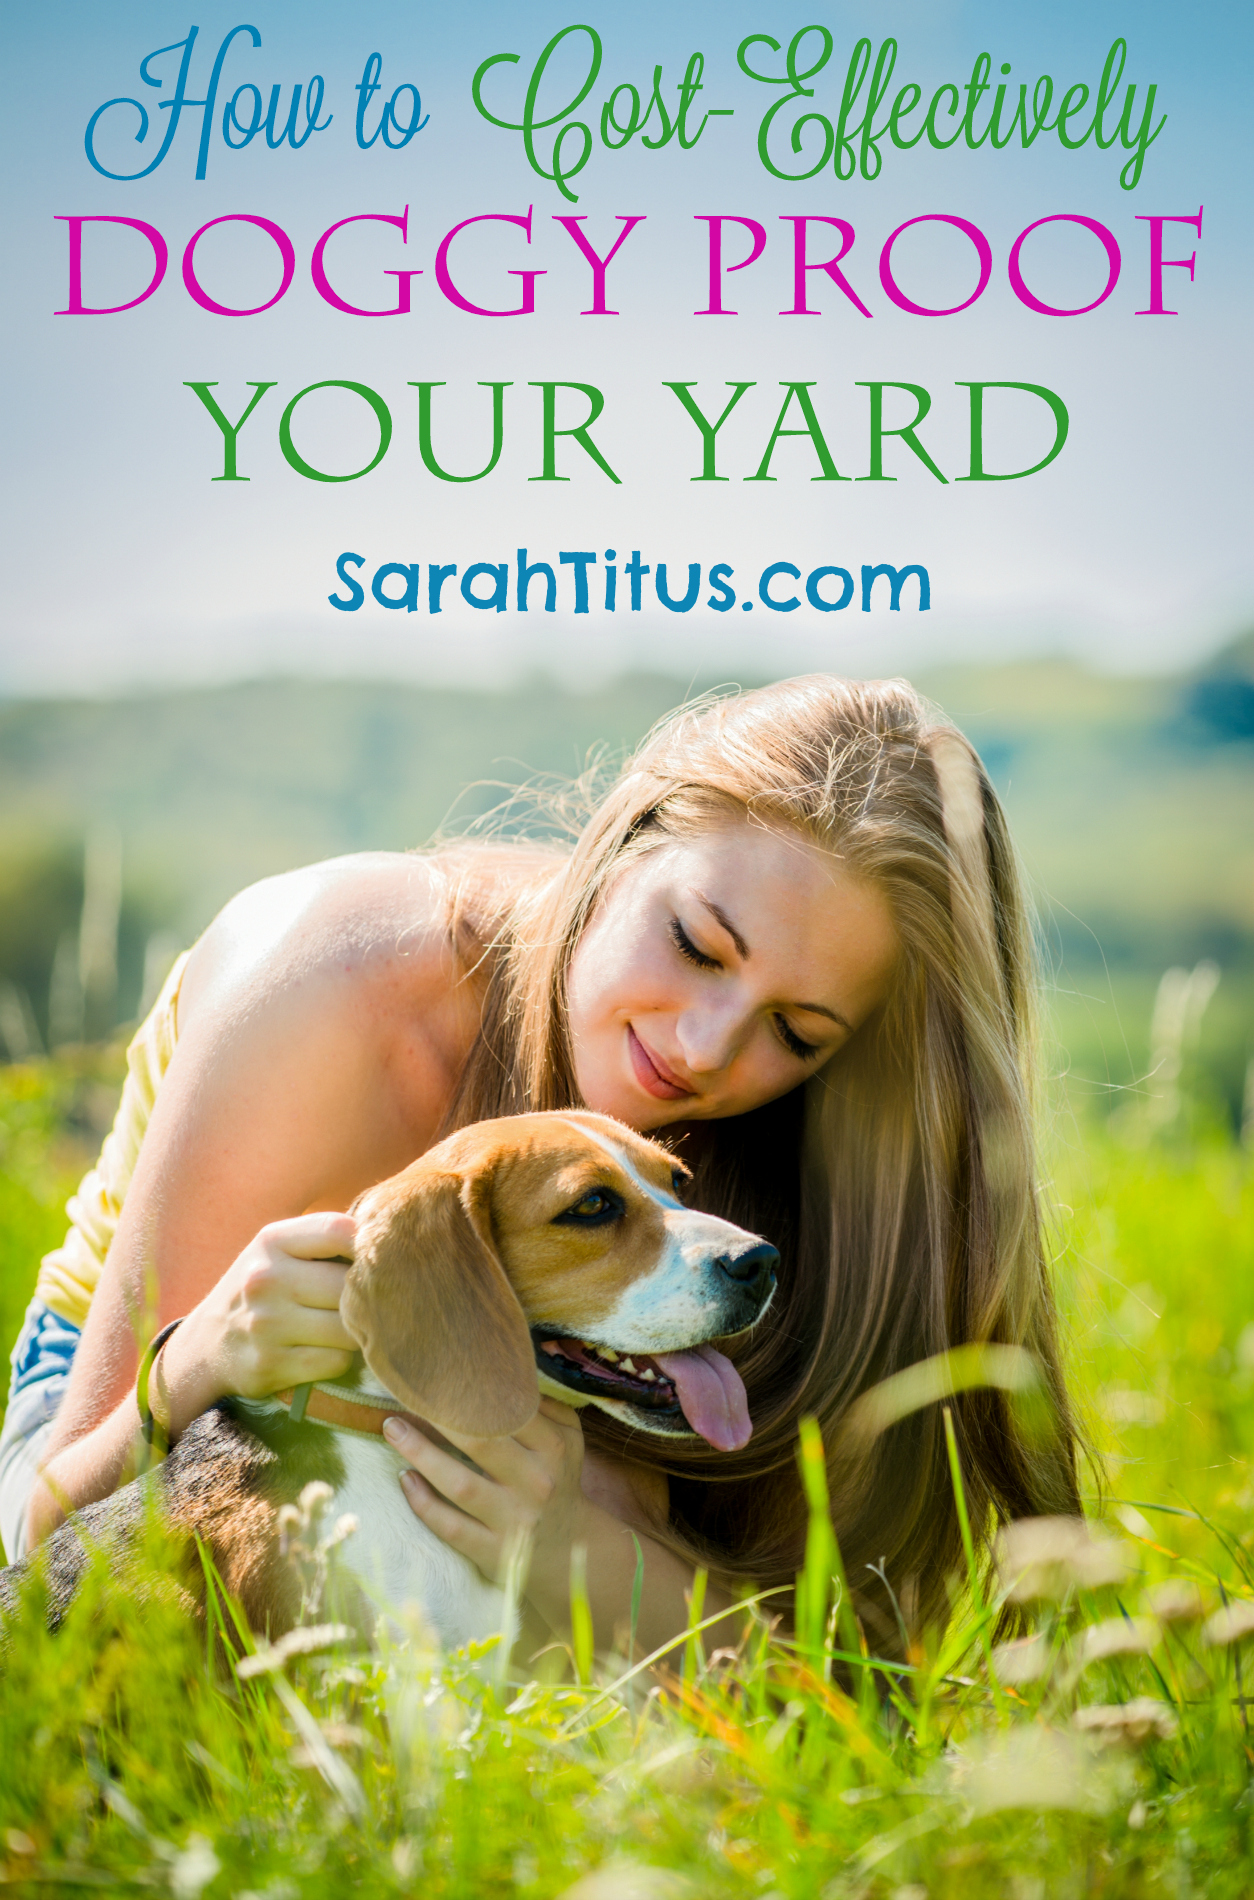 How to Doggy Proof Your Back Yard